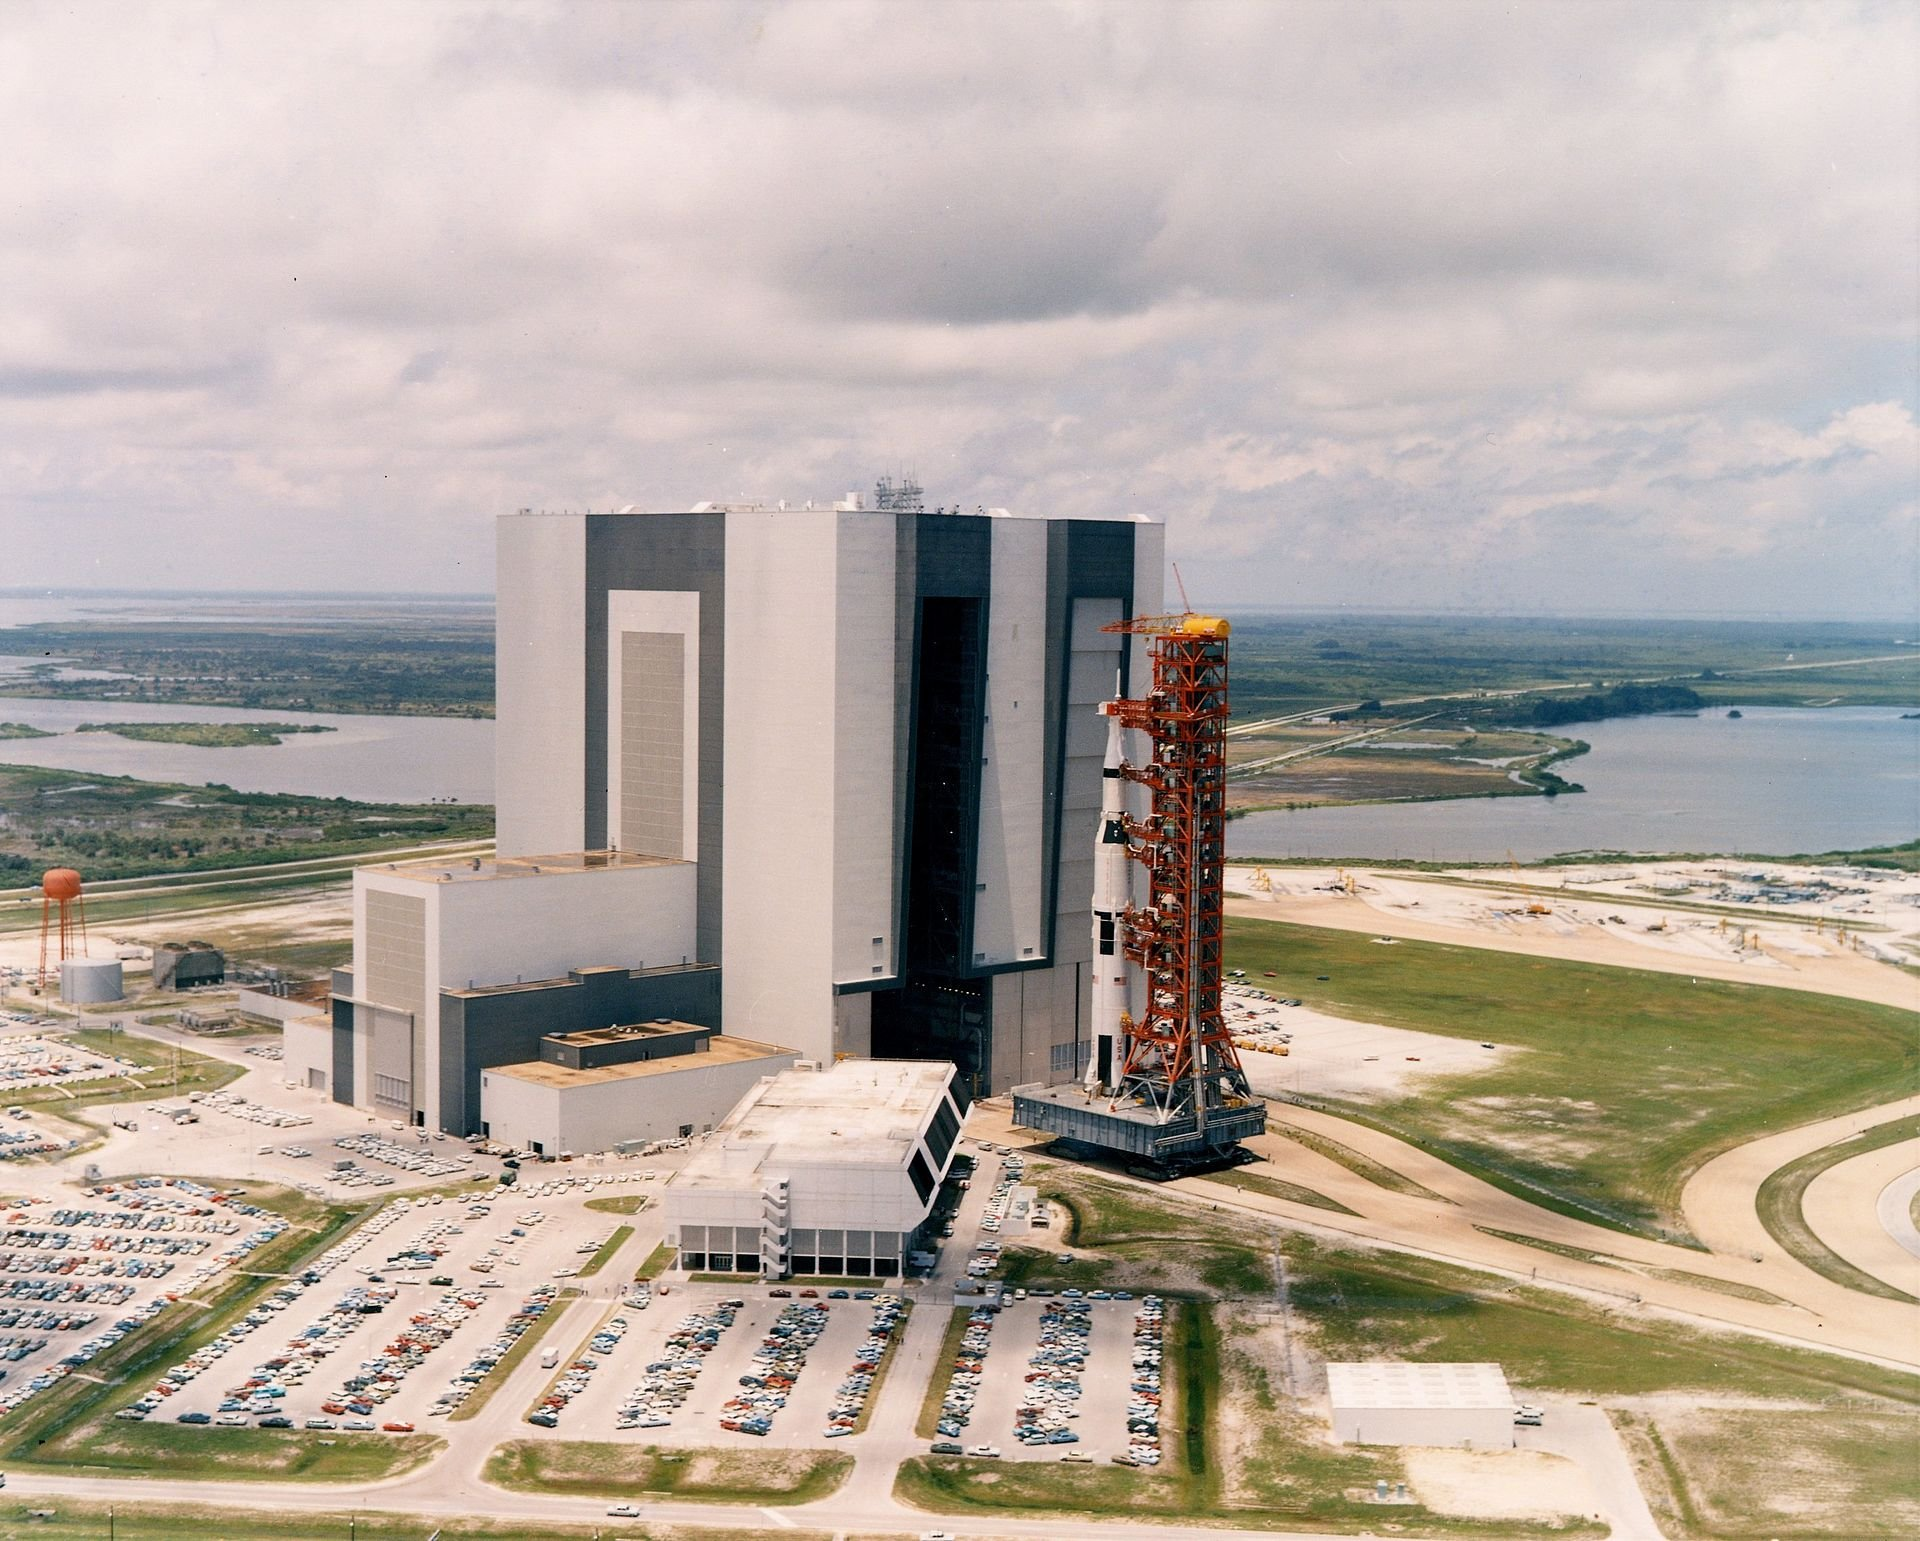 The Apollo 11 Saturn V rolls out of the KSC's Vehicle Assembly Building in May 1969. The world's largest single-story building, the VAB made it possible to fully assemble vehicles like the Saturn V and Space Shuttle. Courtesy of NASA.